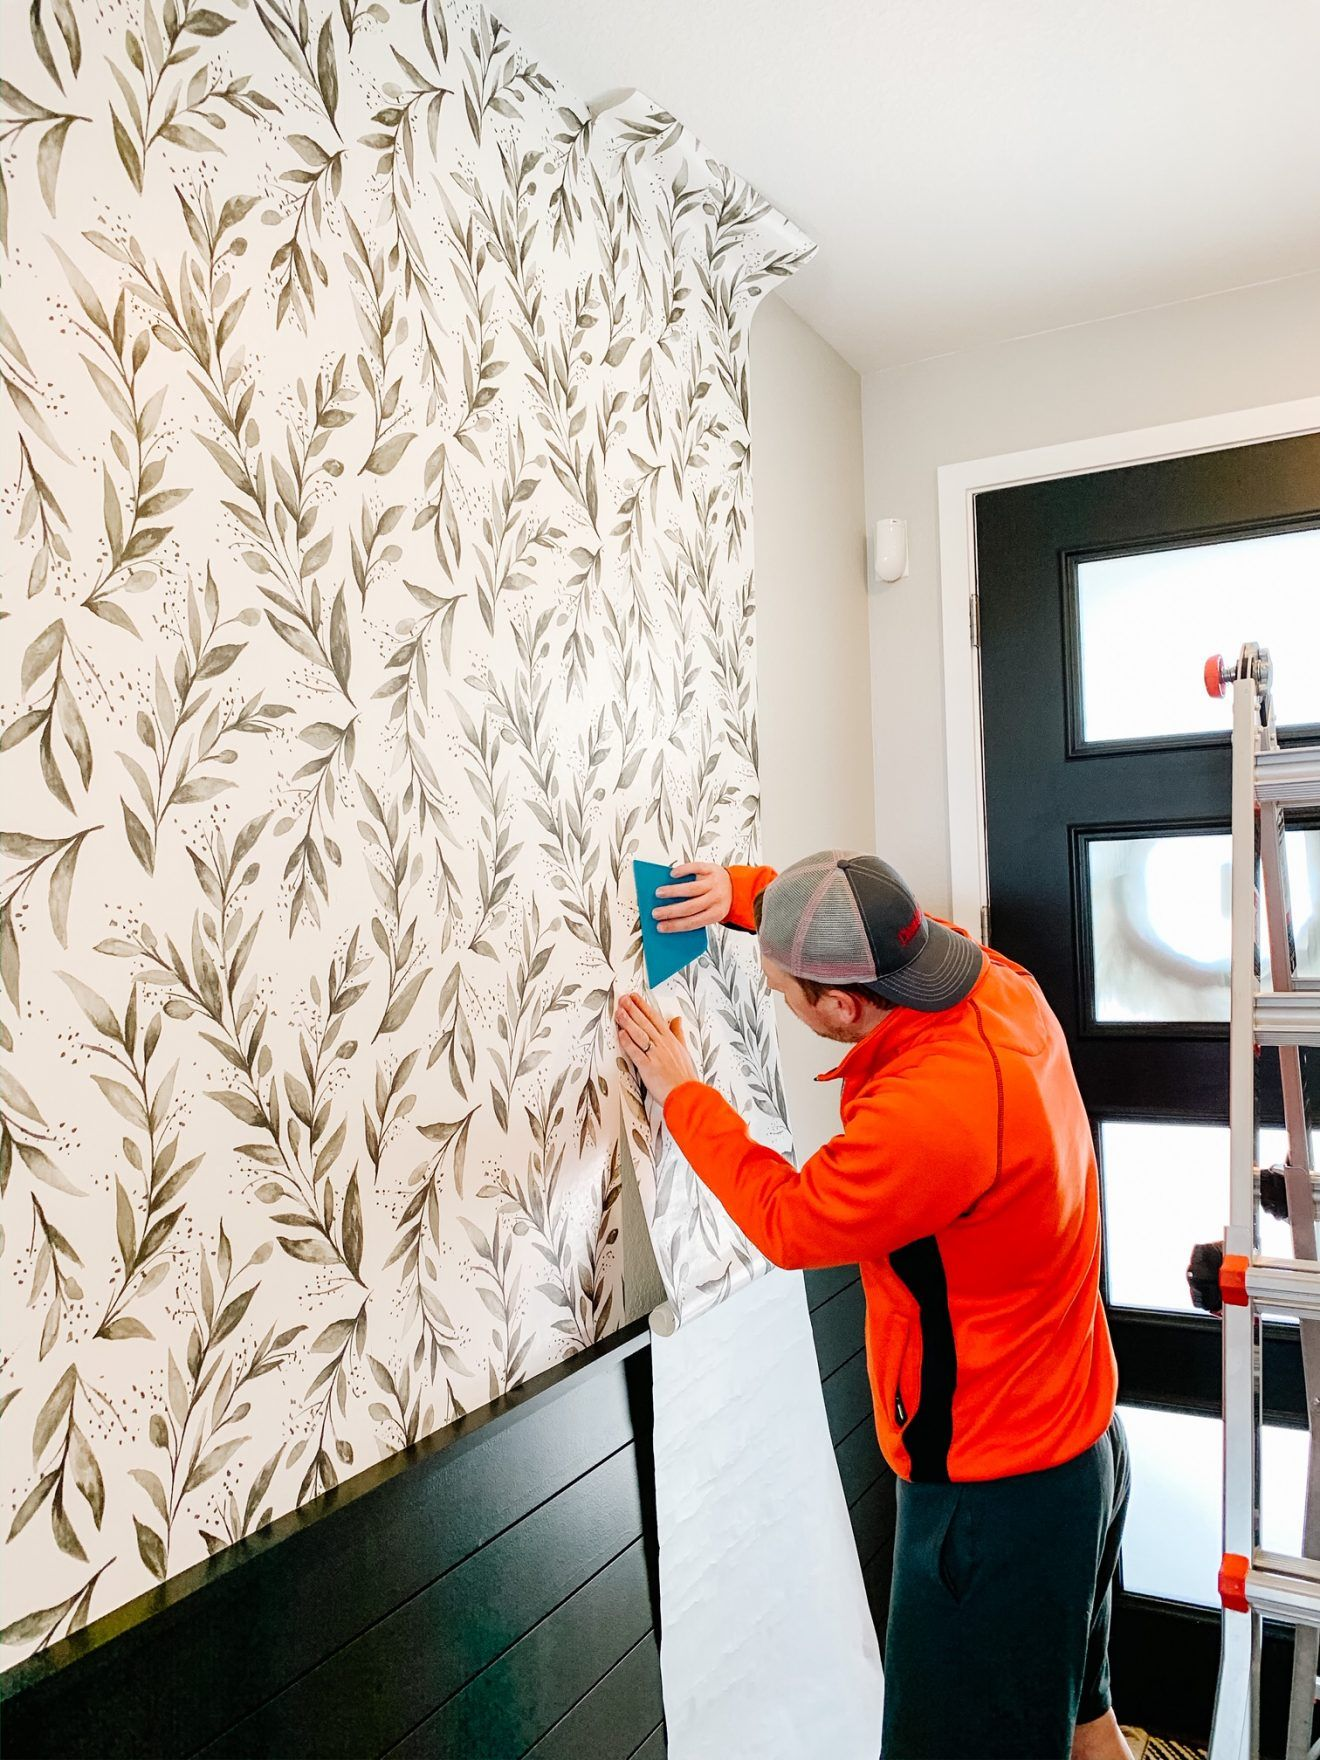 Entryway Peel And Stick Wallpaper Sprucing Up Mamahood Peel And Stick Wallpaper Magnolia Home Collection Ship Lap Walls